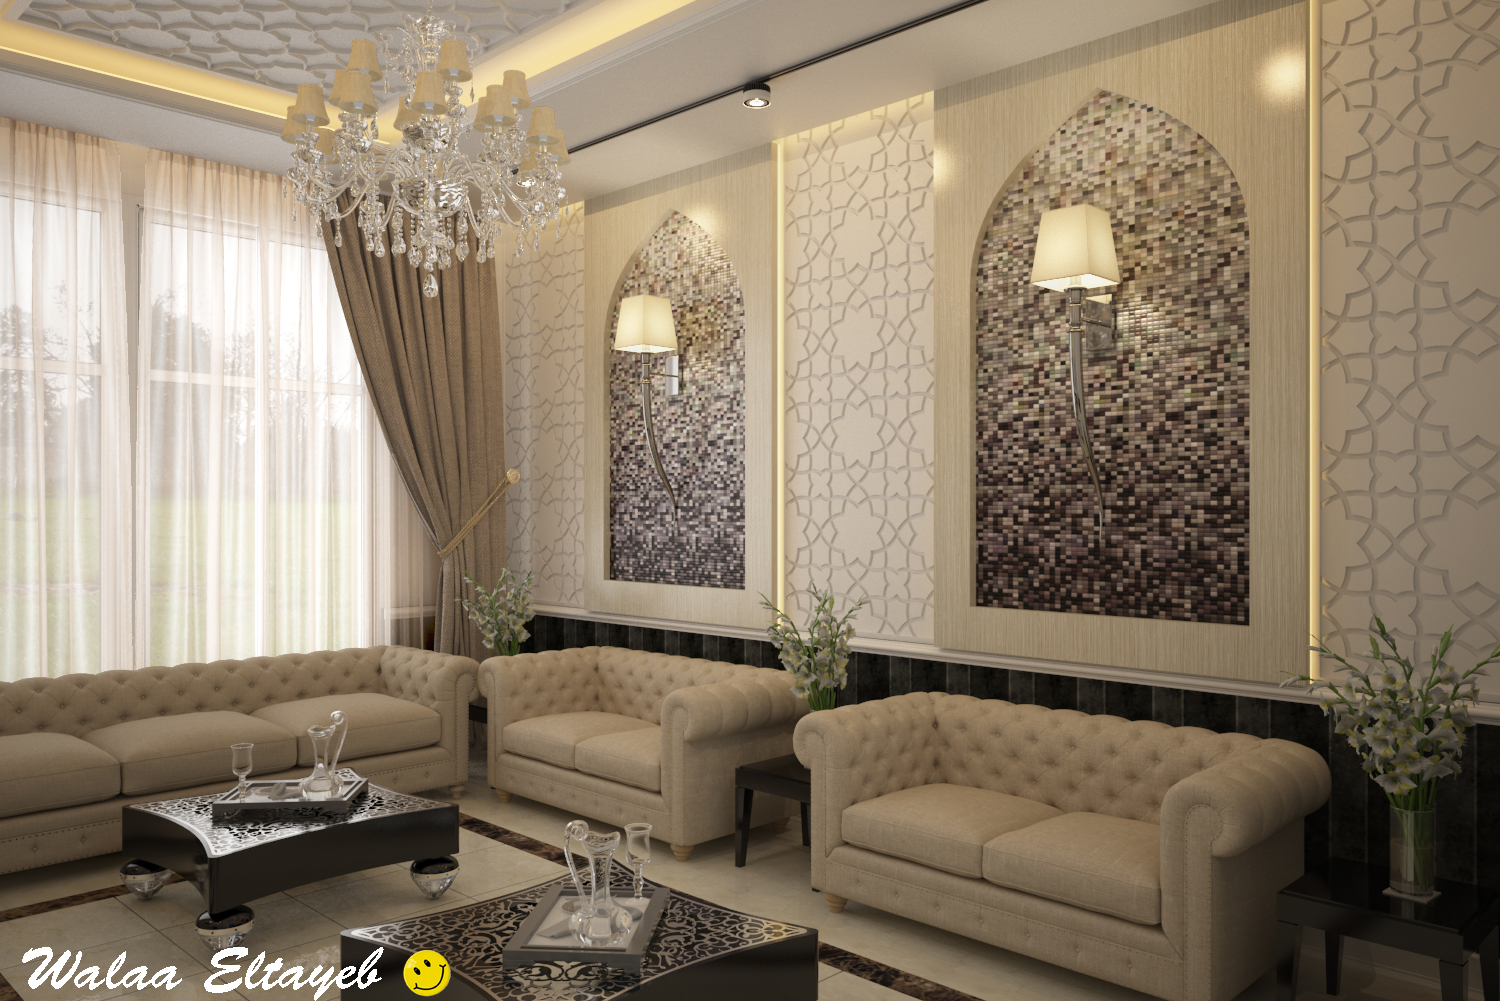 Salon interance hall walaadesigns for Latest living hall design